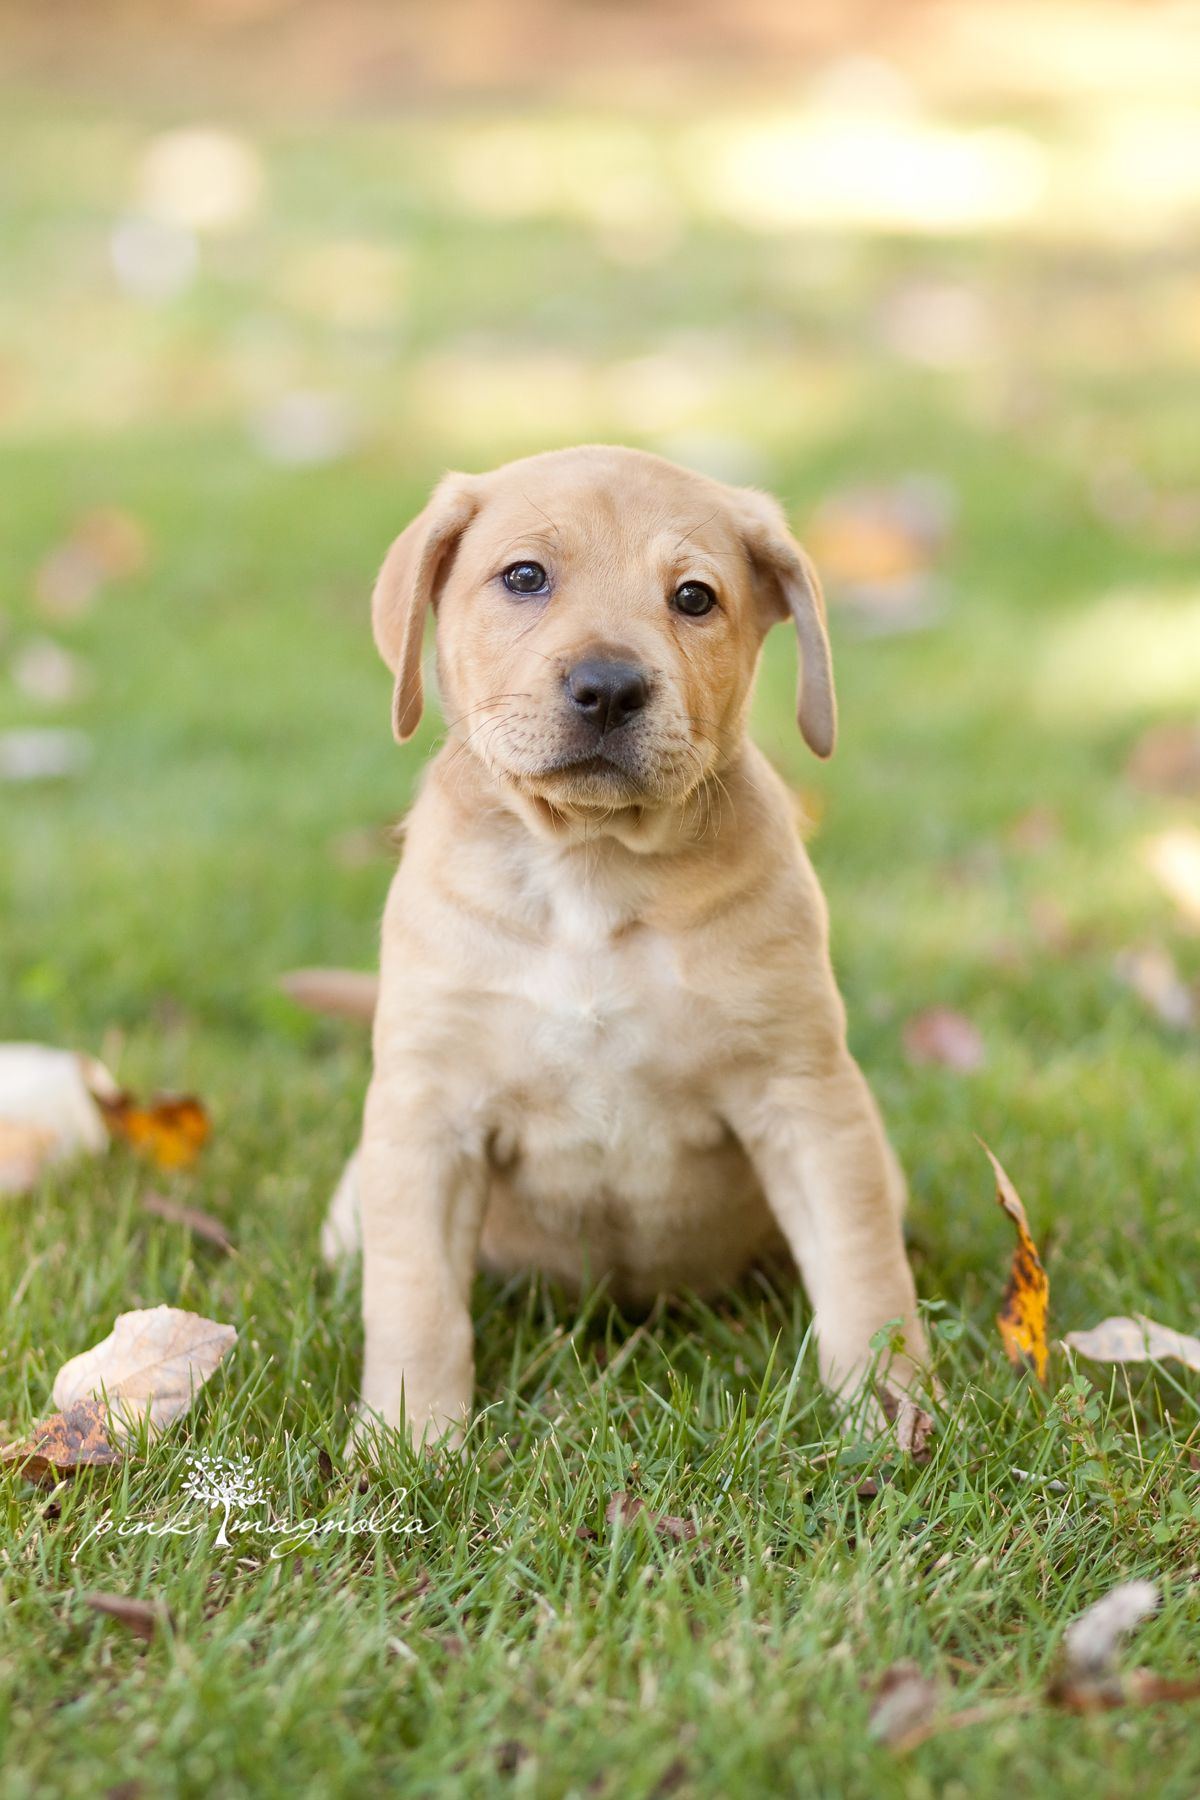 ADOPTED! Maddie is a darling lab mix puppy who is